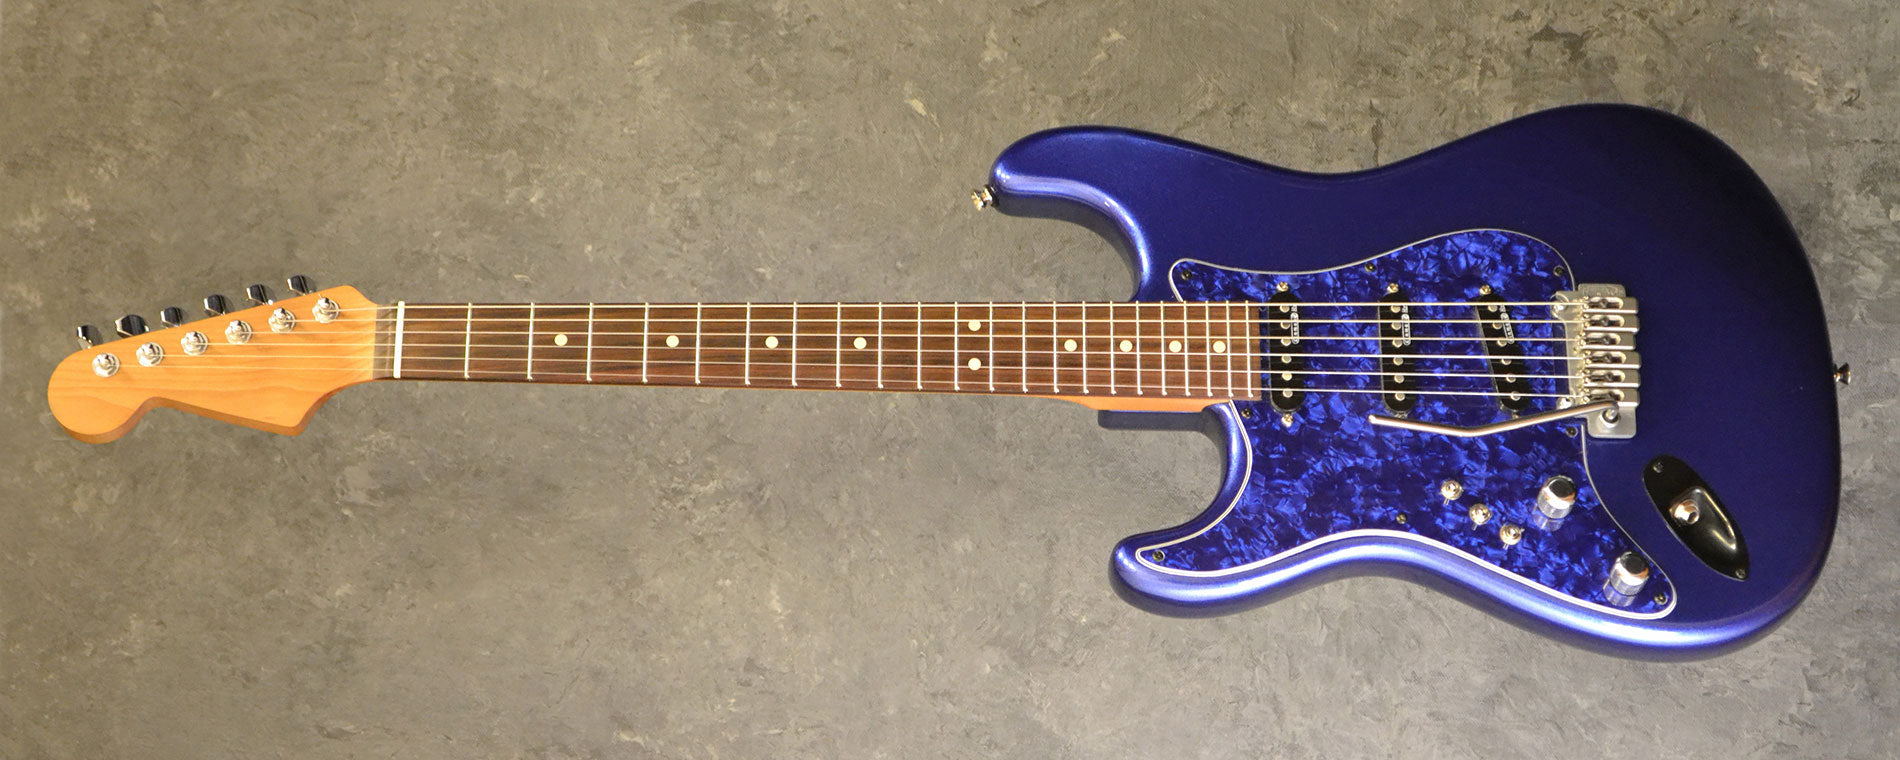 Used Guitars The Guitar World Electric Wiring For Kit Custom Built Strat Modded With Aftermarket Parts Left Handed 2012 Midnight Blue